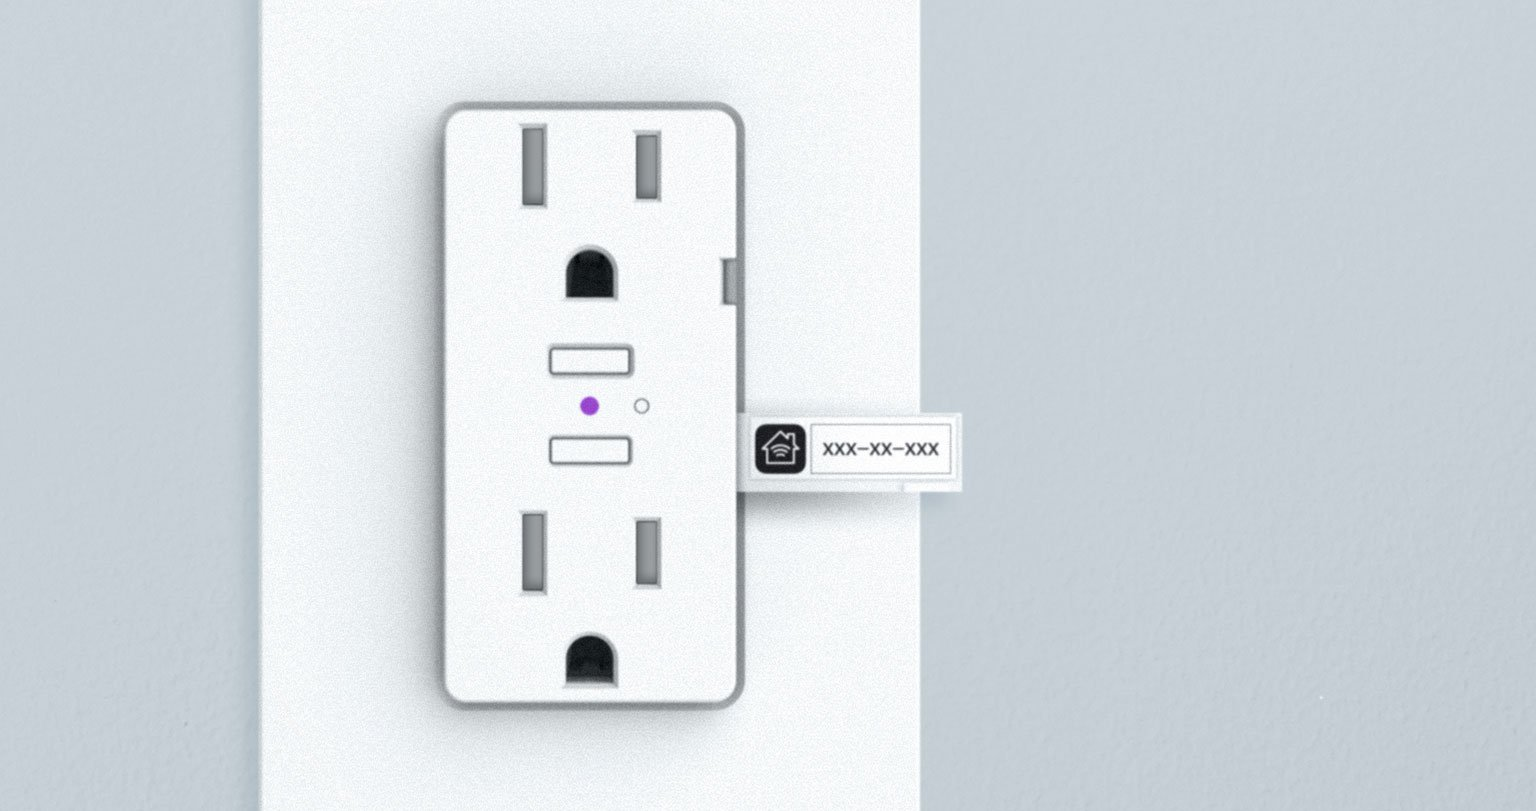 iDevices Wall outlet, Standard size, color and voltage